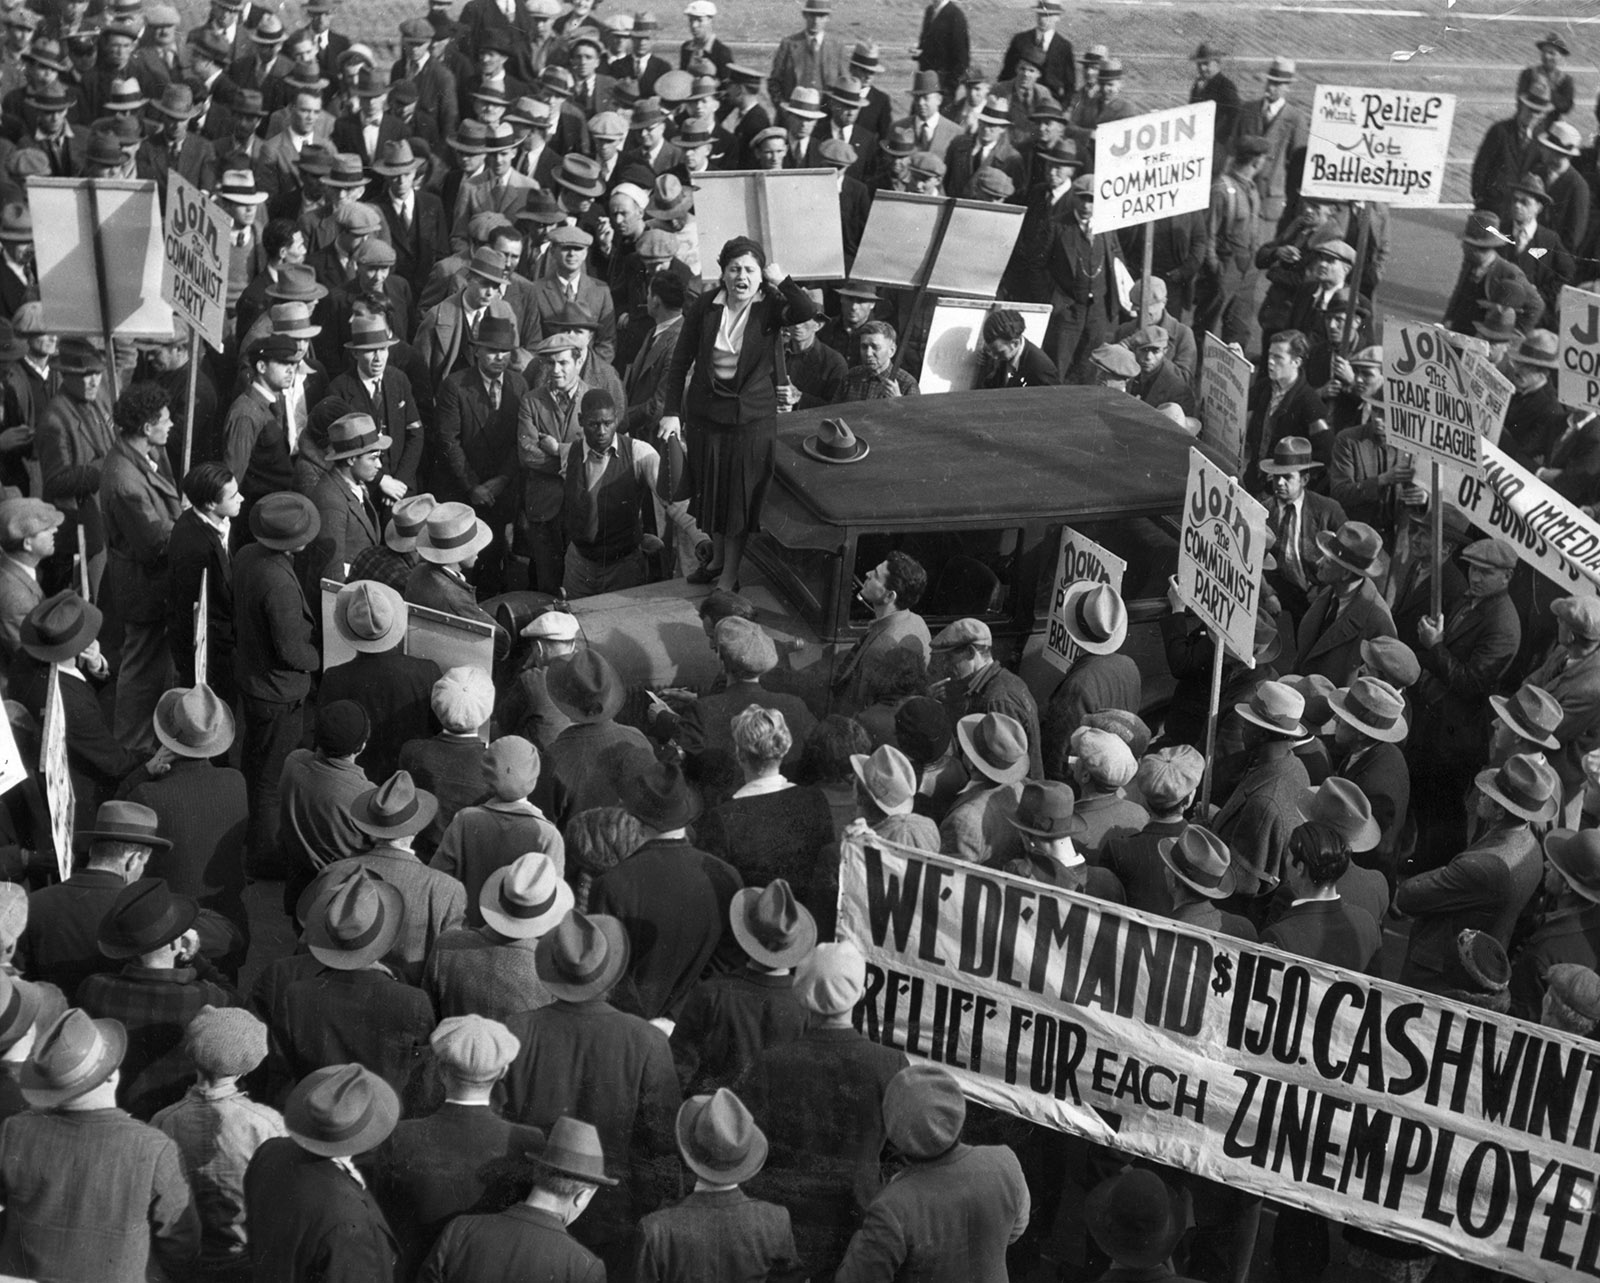 A Communist Party rally calling for relief for the unemployed, San Francisco, circa 1930